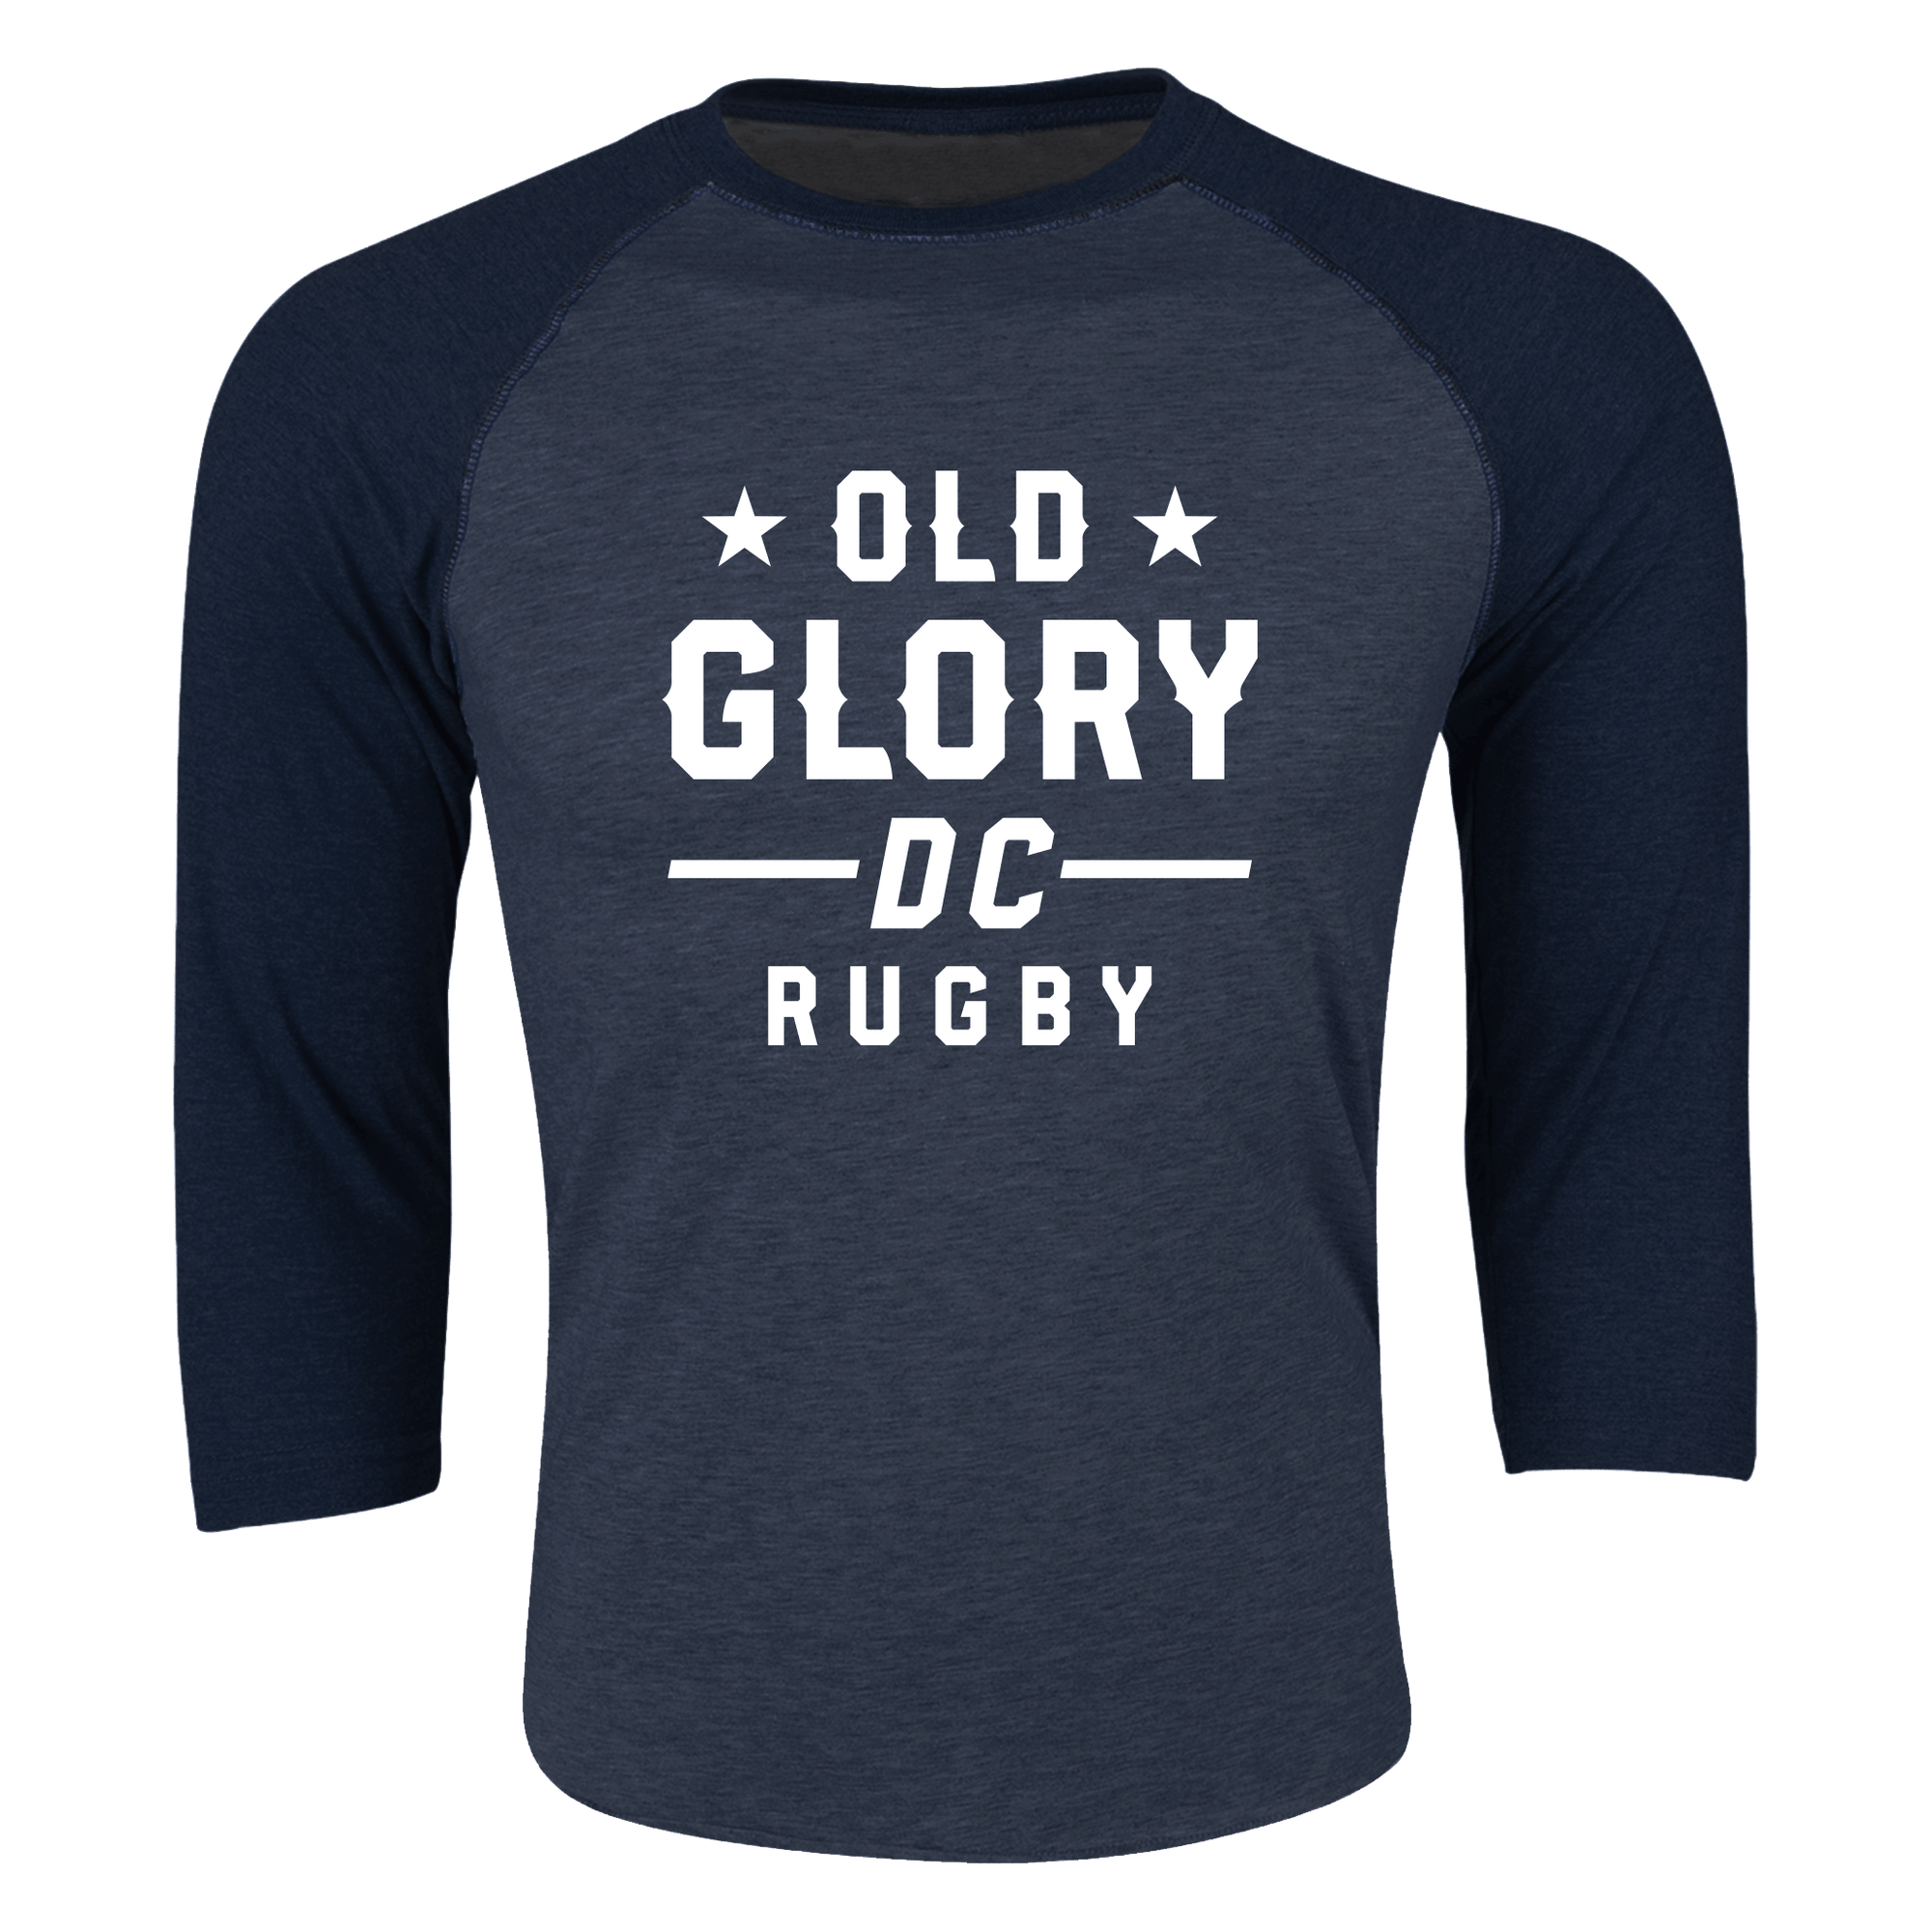 Old Glory DC Rugby 3/4 Sleeve Raglan Shirt